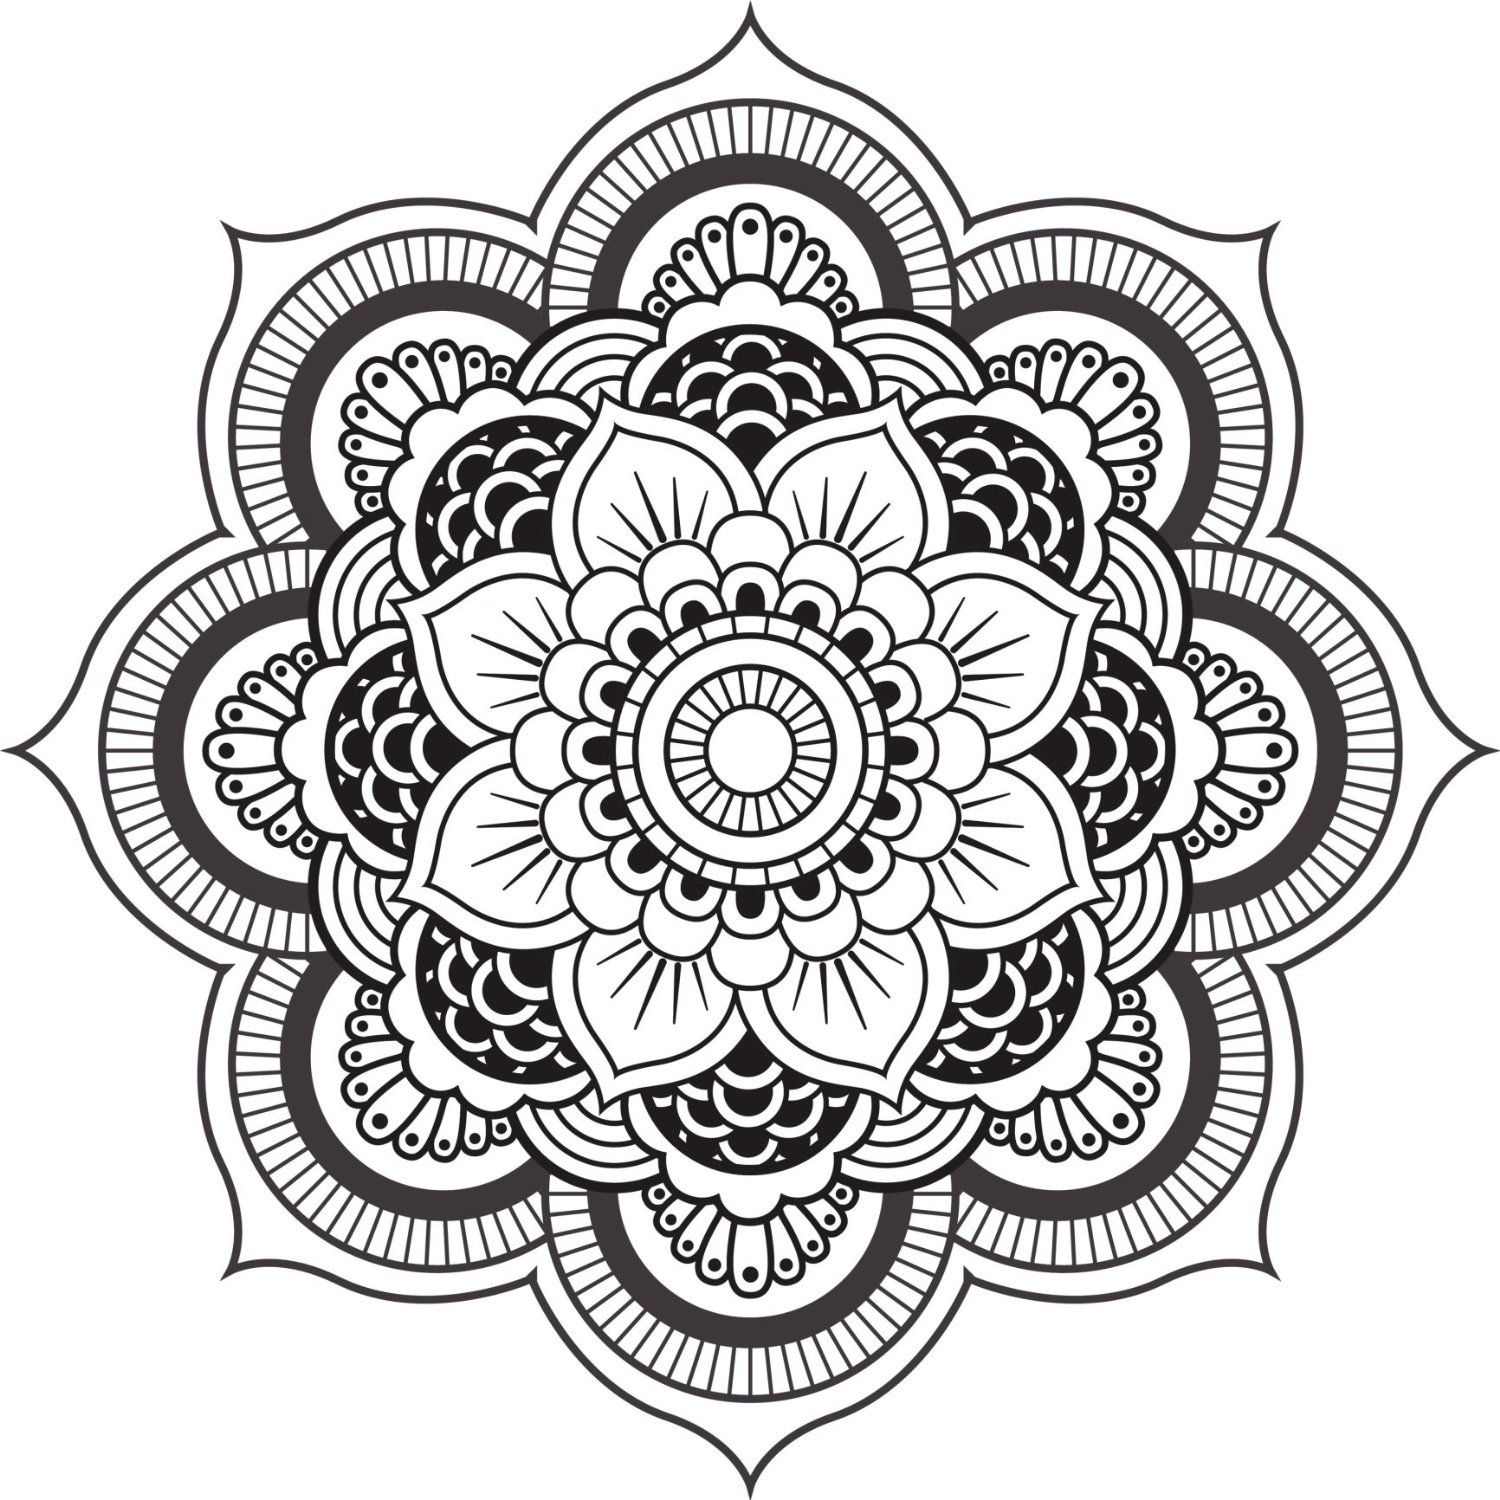 Mandala Design Black White Mandala Painting Pinterest